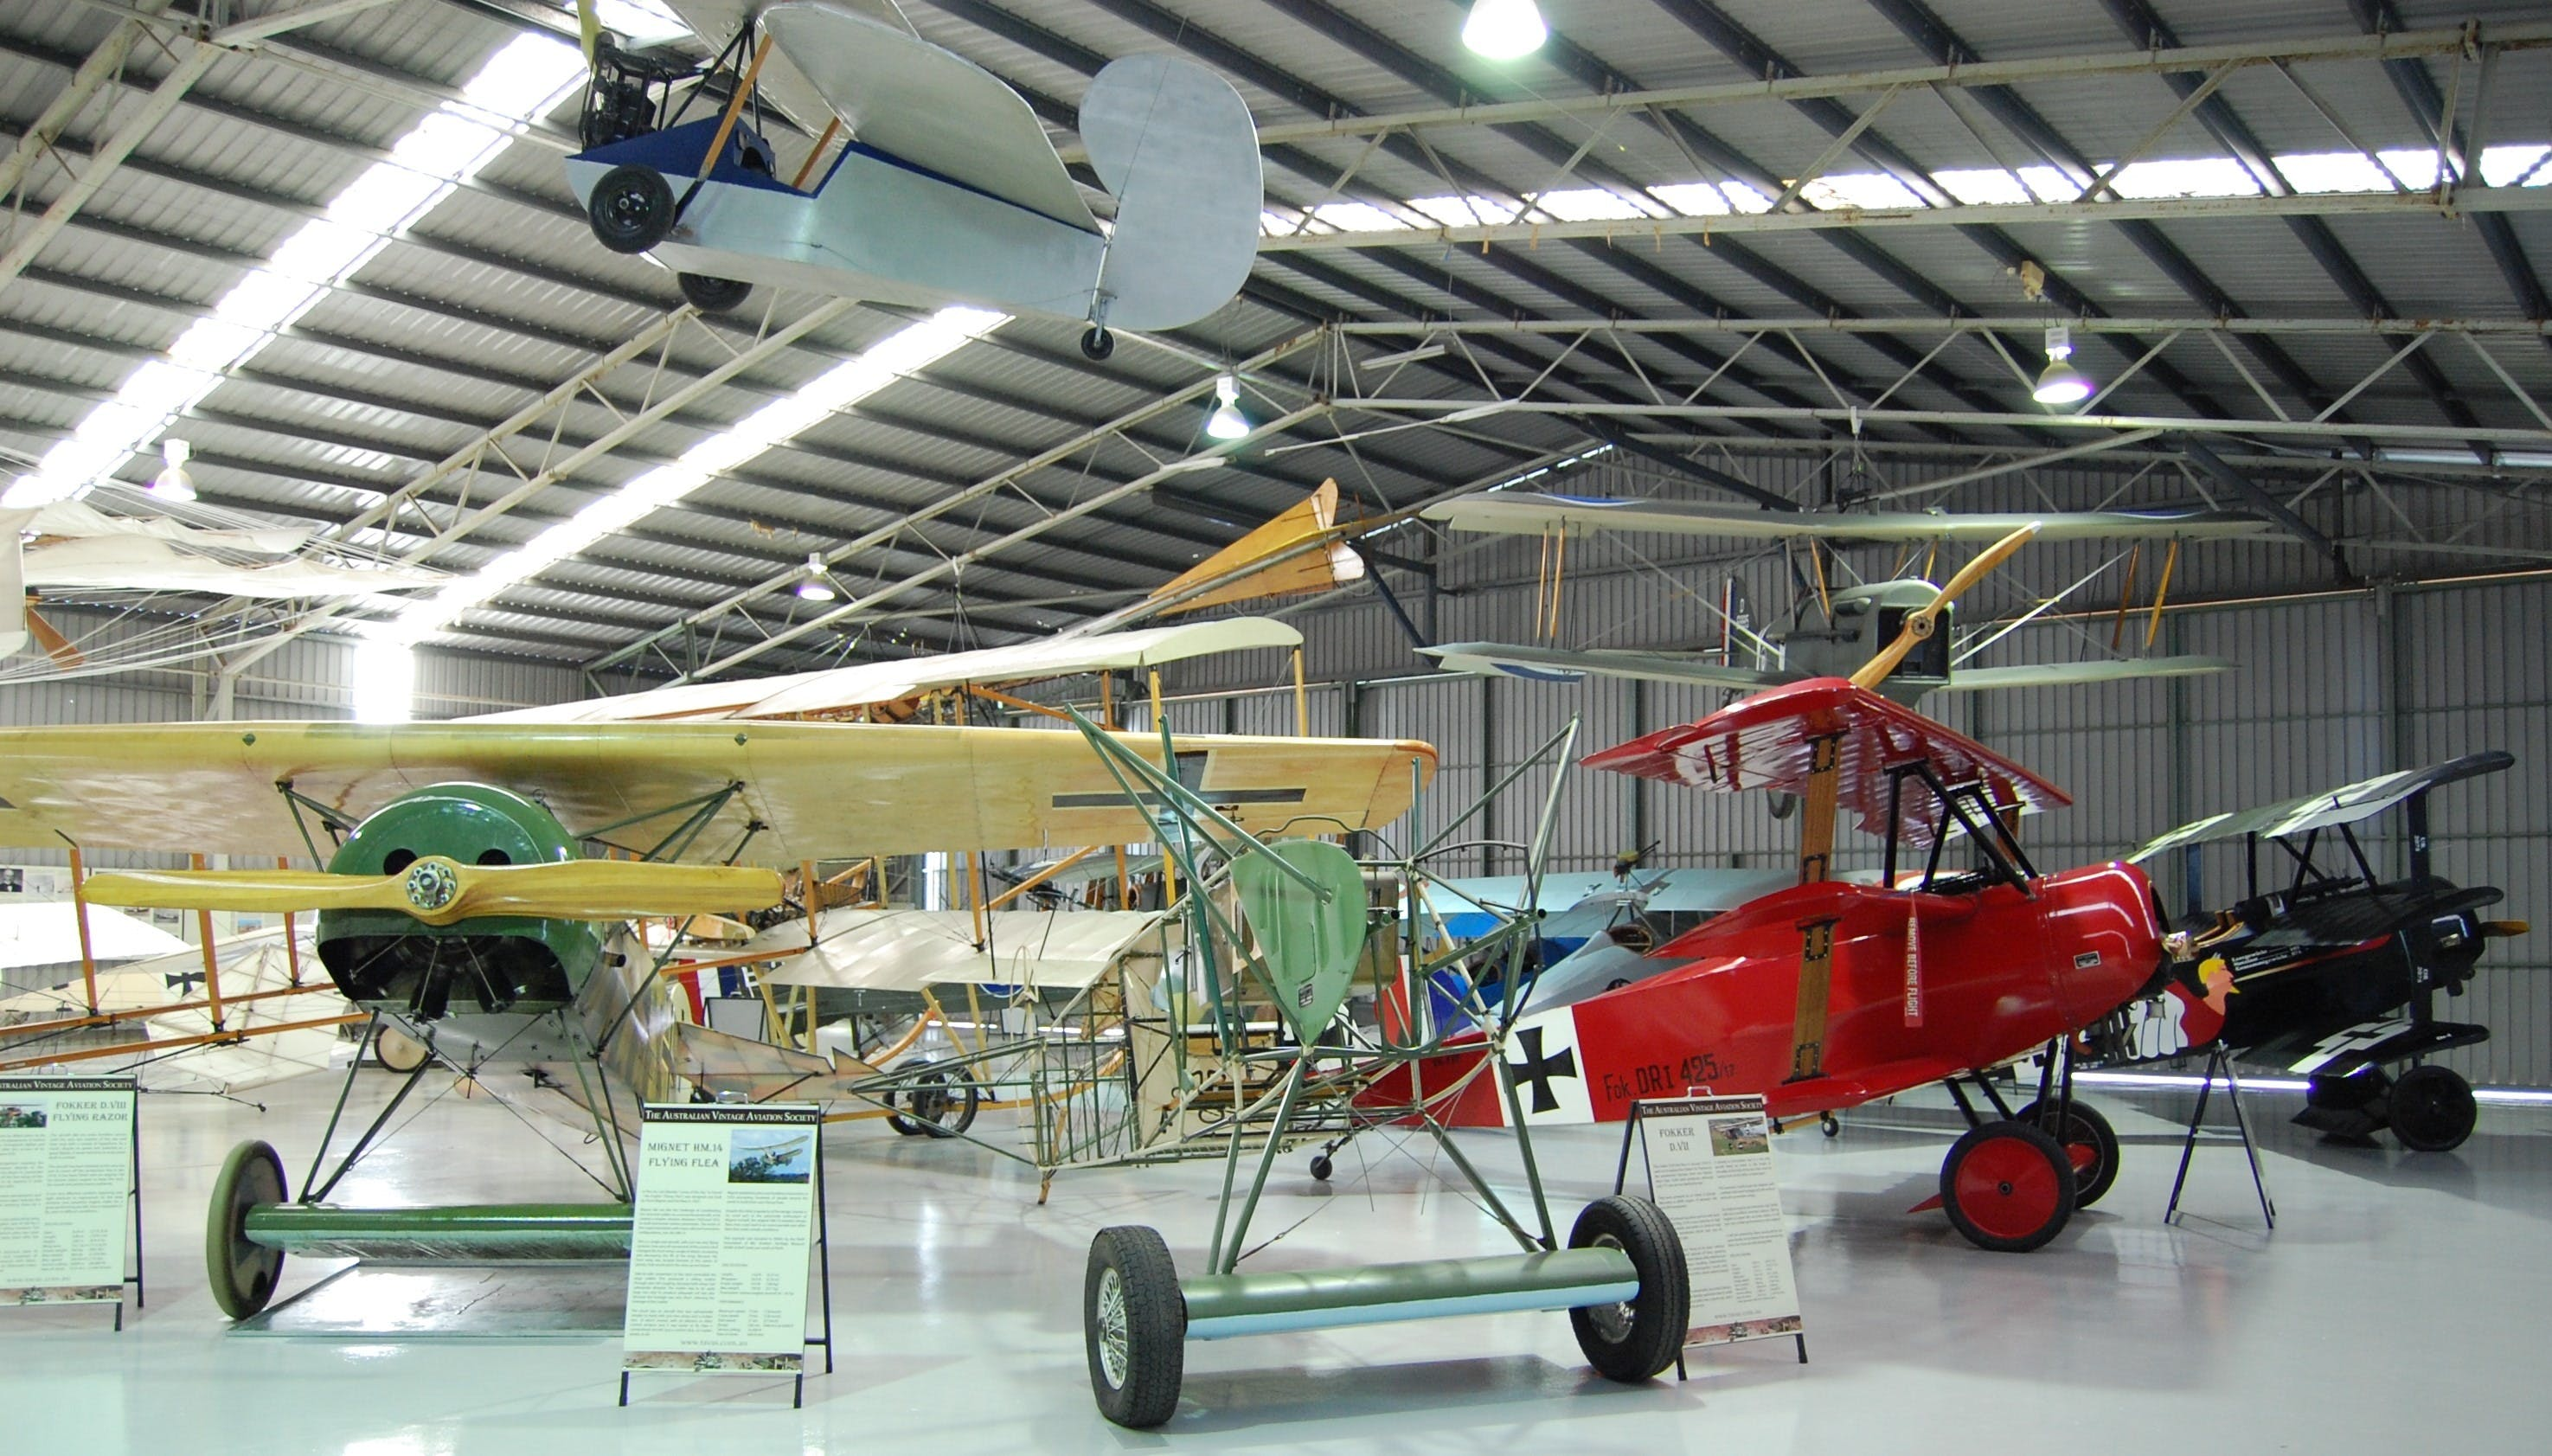 The Australian Vintage Aviation Society Museum - Lightning Ridge Tourism